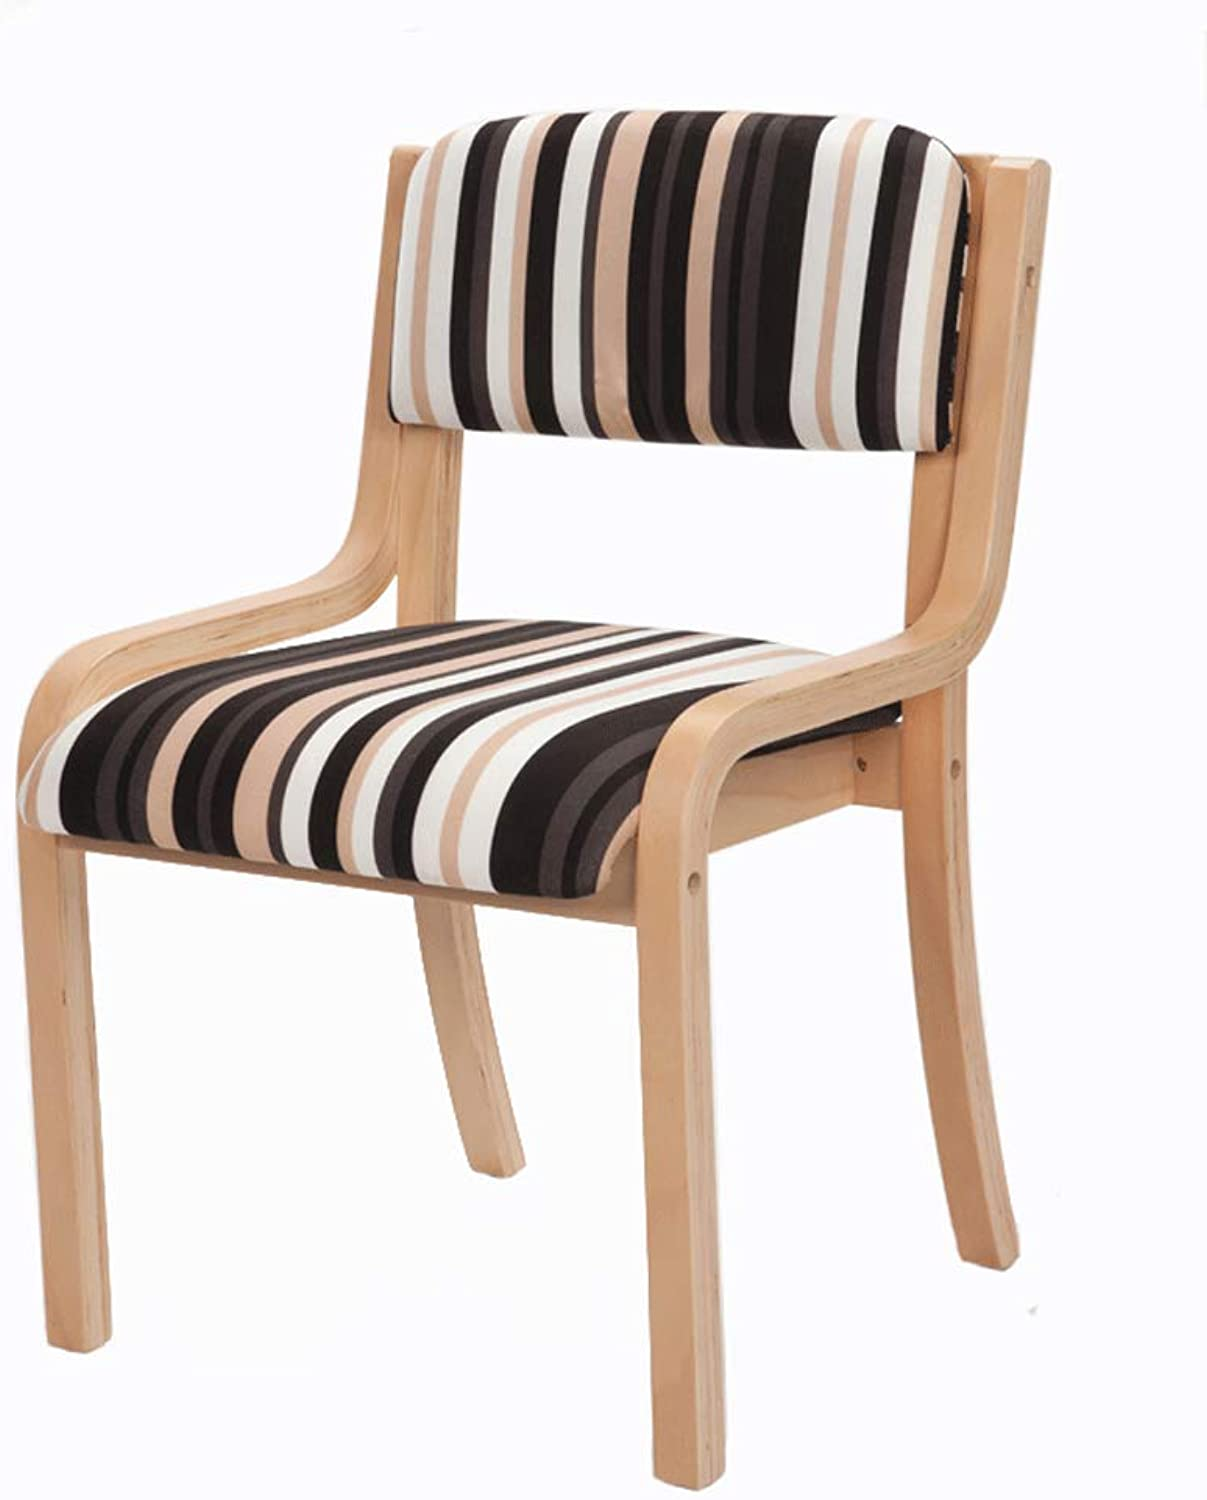 CQOZ Simple Solid Wood Dining Chair Study Single dinette Modern armrests Fashion Backrest Soft Case Wooden Chair Folding Chair (color    7)